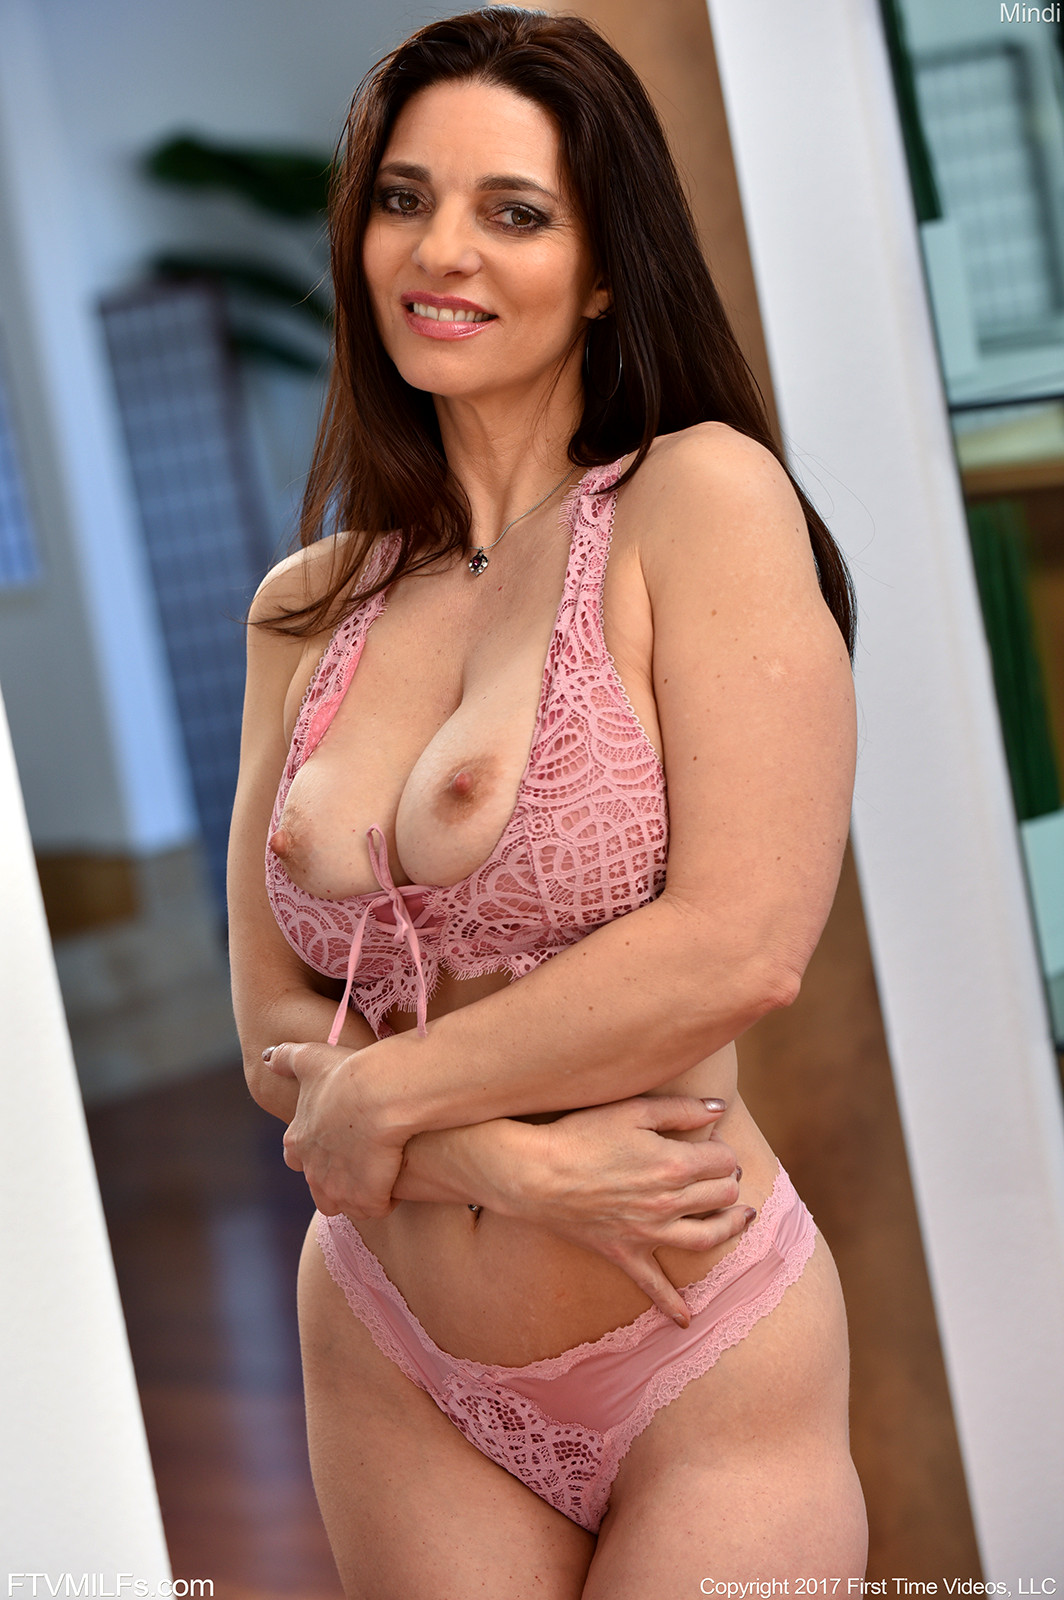 image Mandy dee how wet can you get